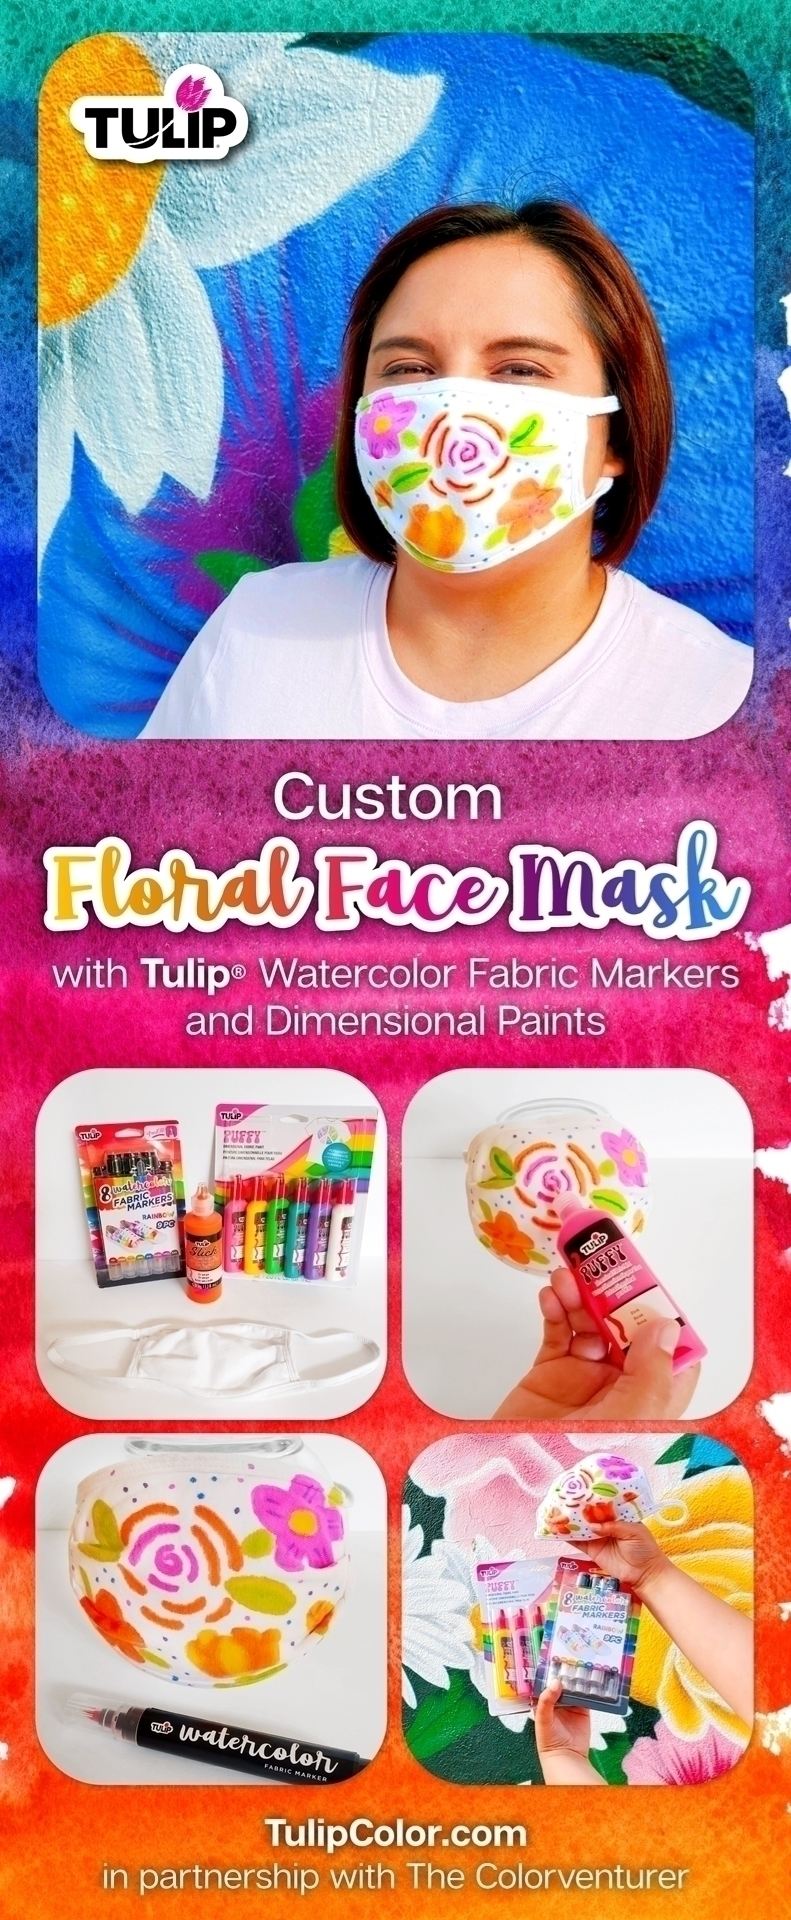 Make a Watercolor Floral Face Mask with Fabric Markers and Fabric Paints